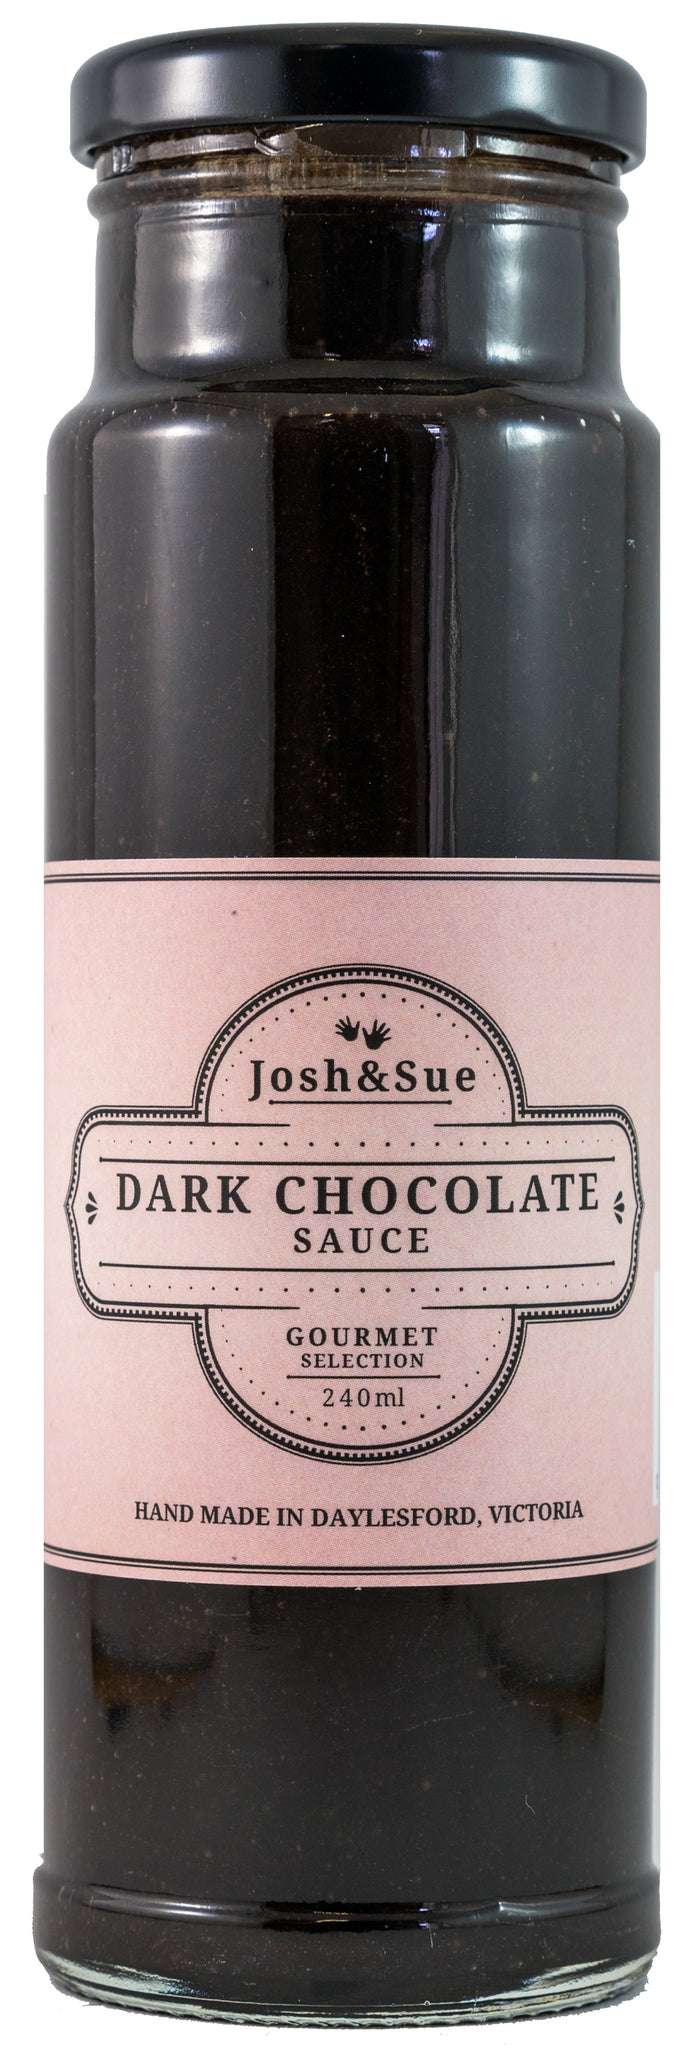 Josh & Sue Dark Chocolate Sauce